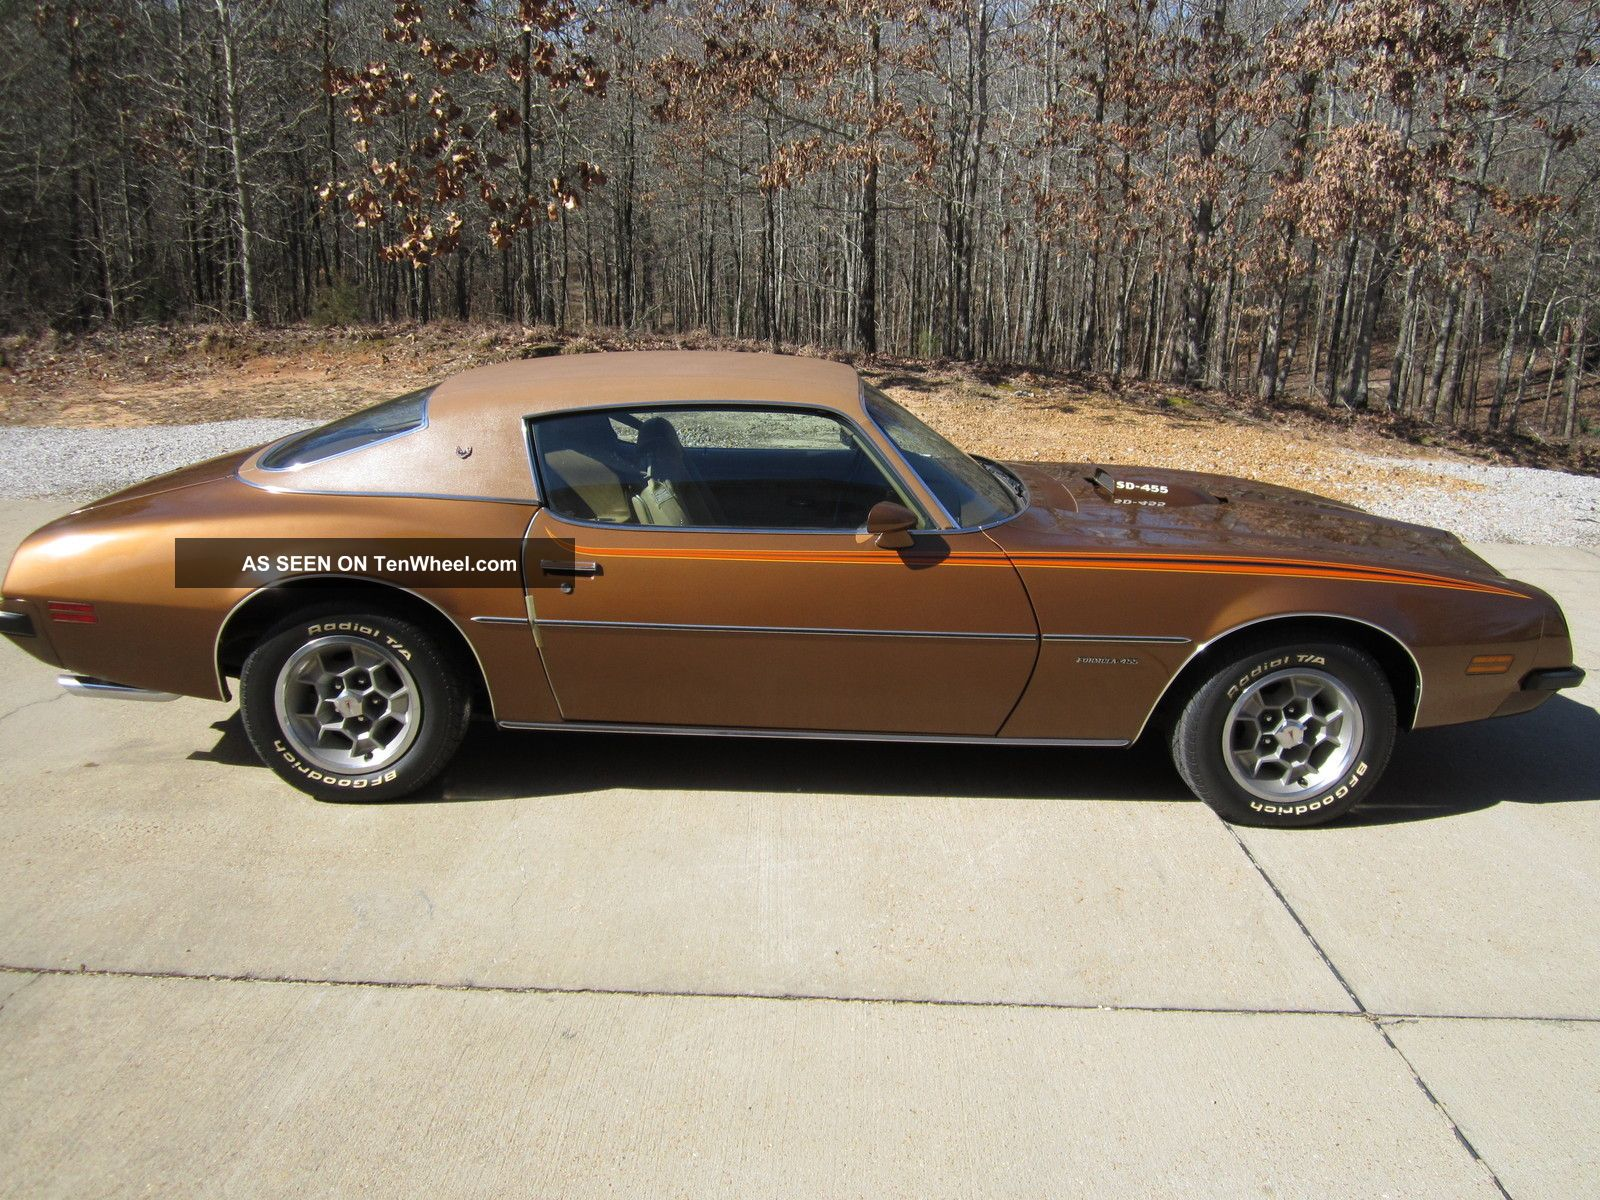 1974 Pontiac Firebird Formula Duty Firebird photo